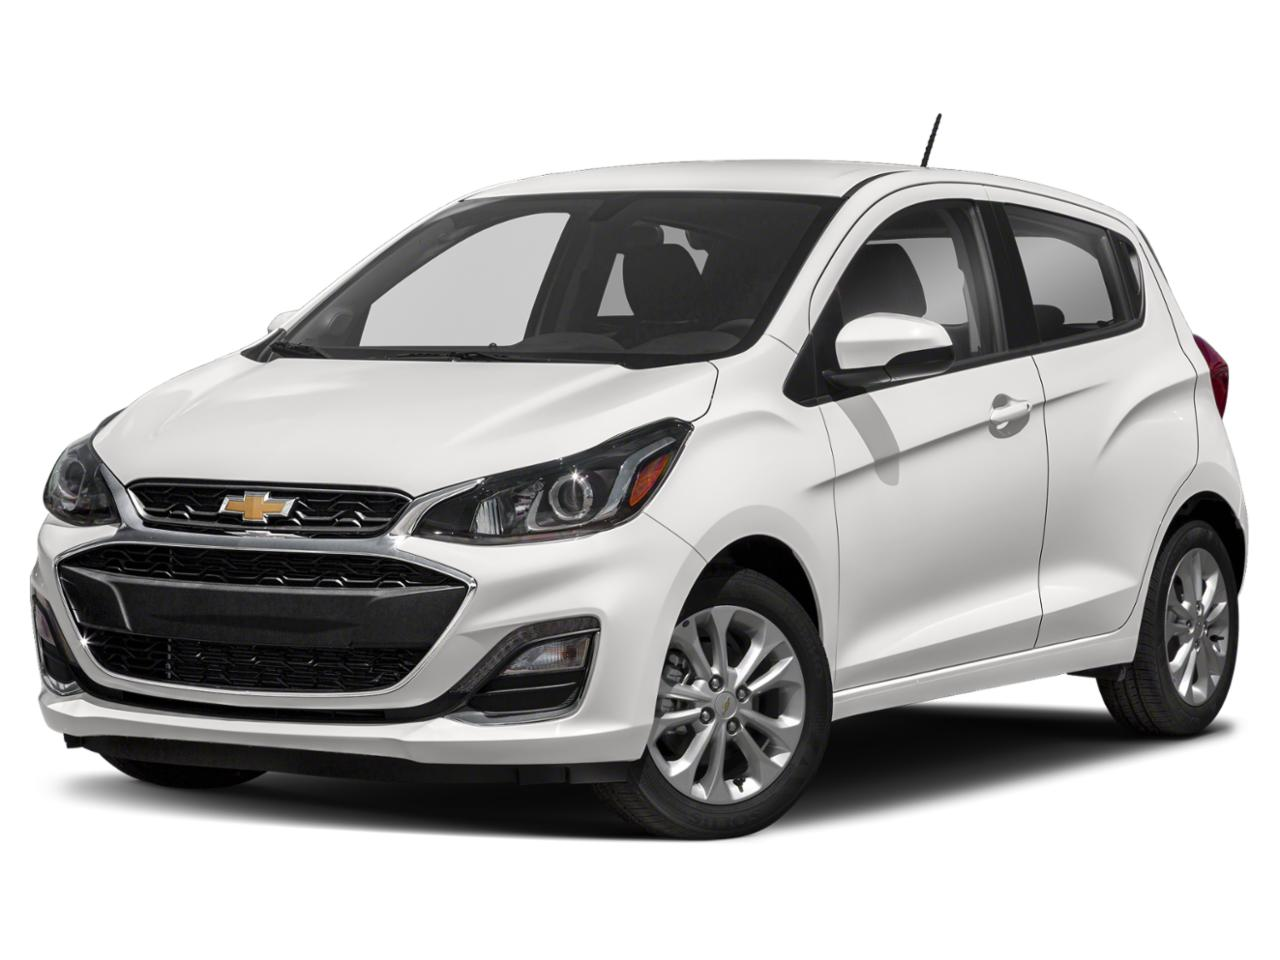 2021 Chevrolet Spark Vehicle Photo in Owensboro, KY 42303